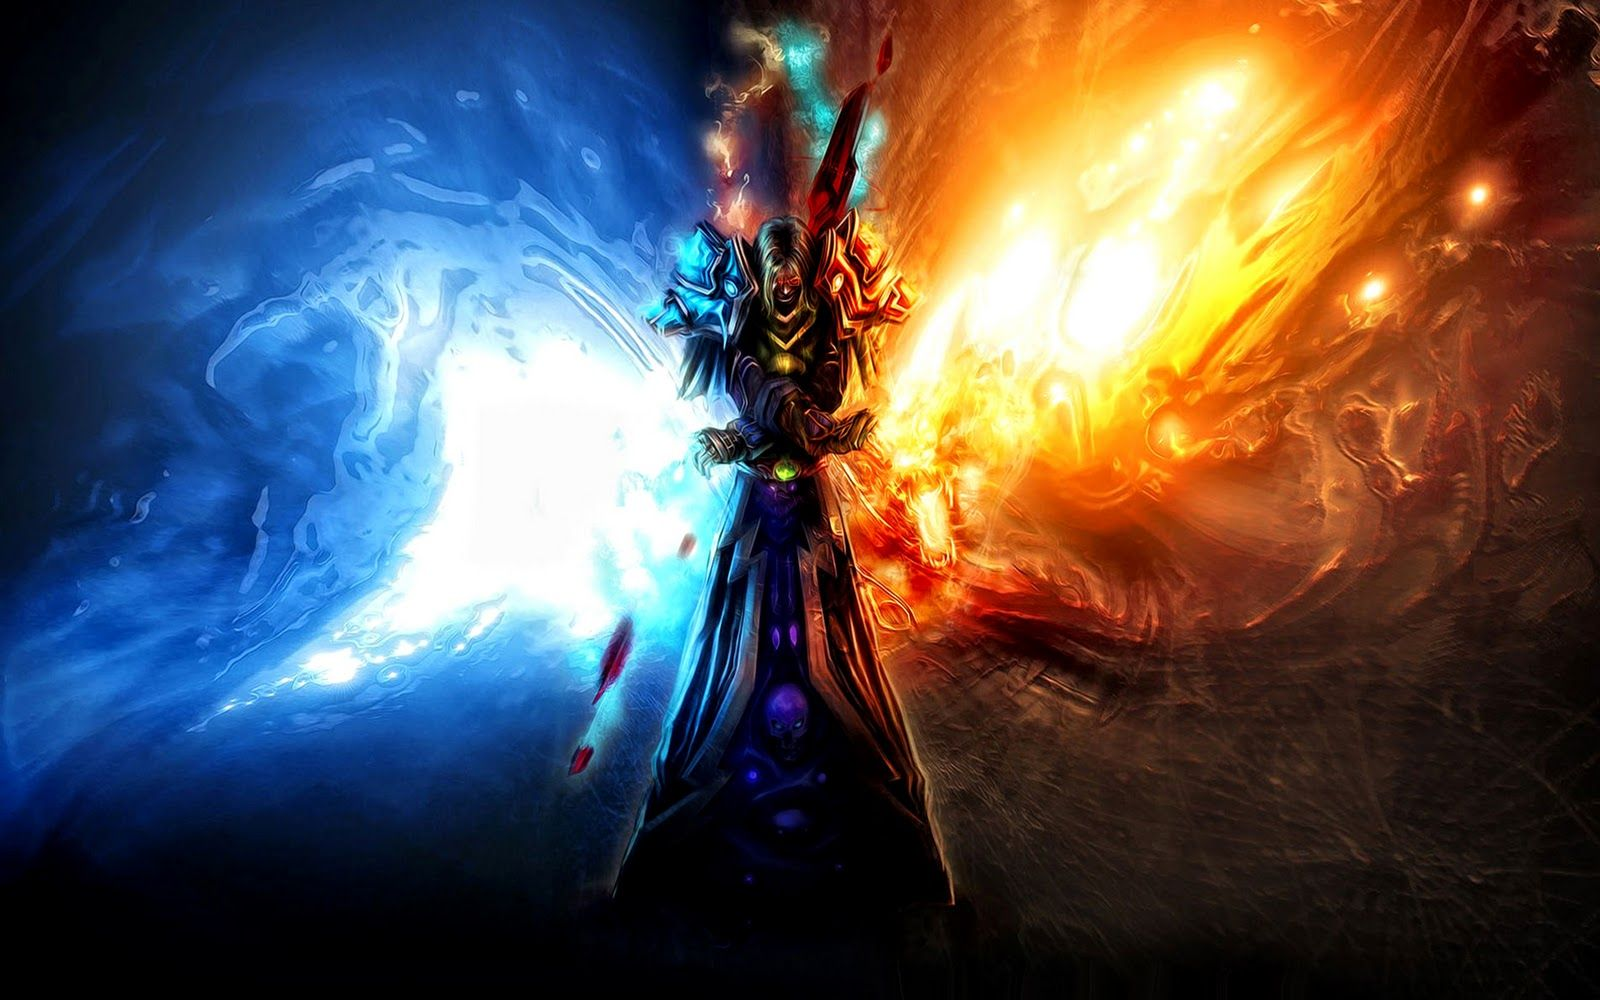 Hd Desktop Wallpapers Free Online Most Amazing Full Hd Wallpapers Ever World Of Warcraft Wallpaper Hd Cool Wallpapers Cool Wallpaper